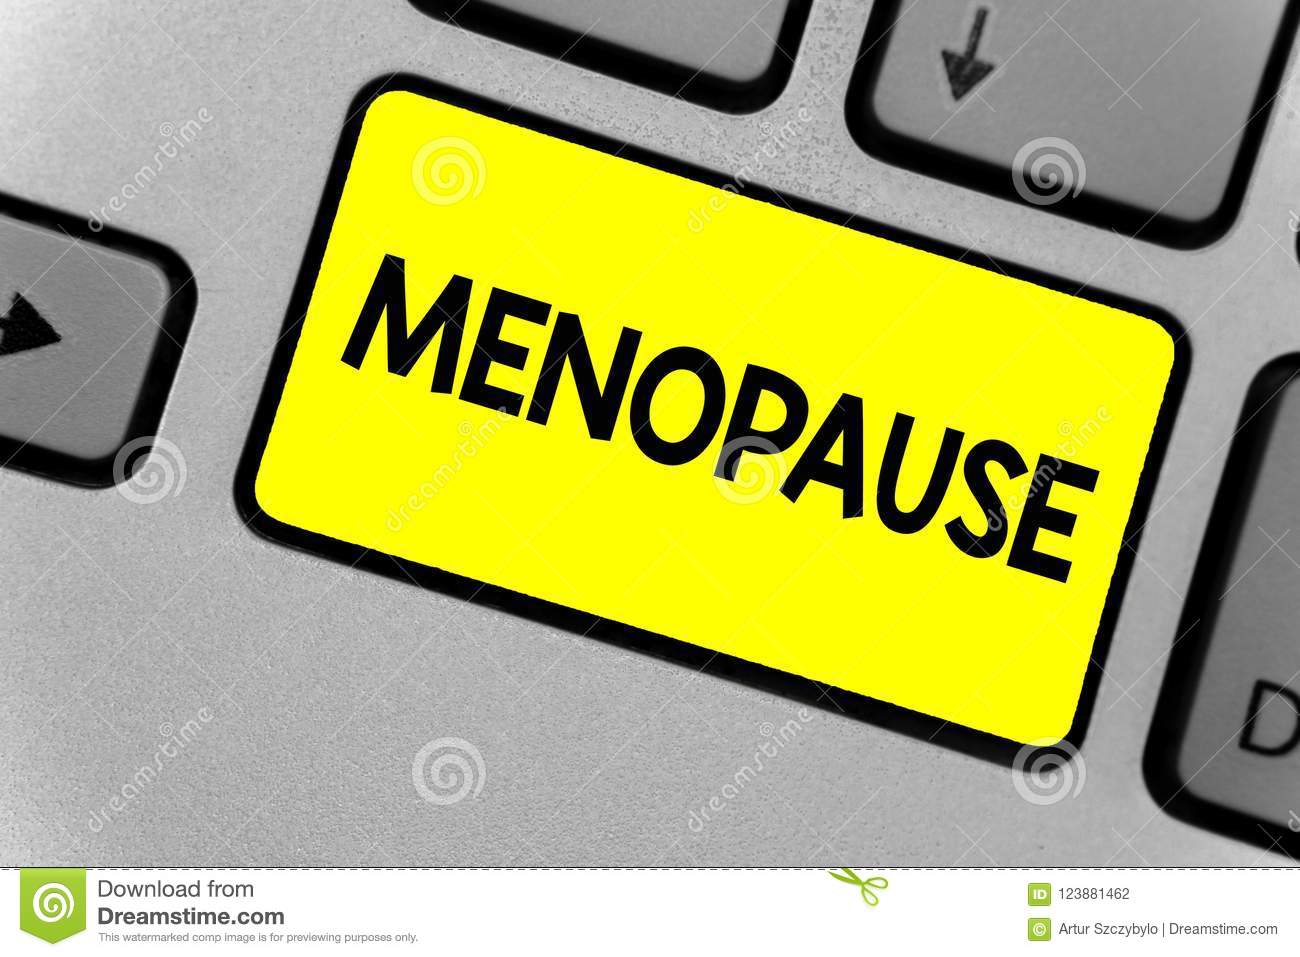 Writing note showing Menopause. Business photo showcasing Period of permanent cessation or end of menstruation cycle Keyboard yell